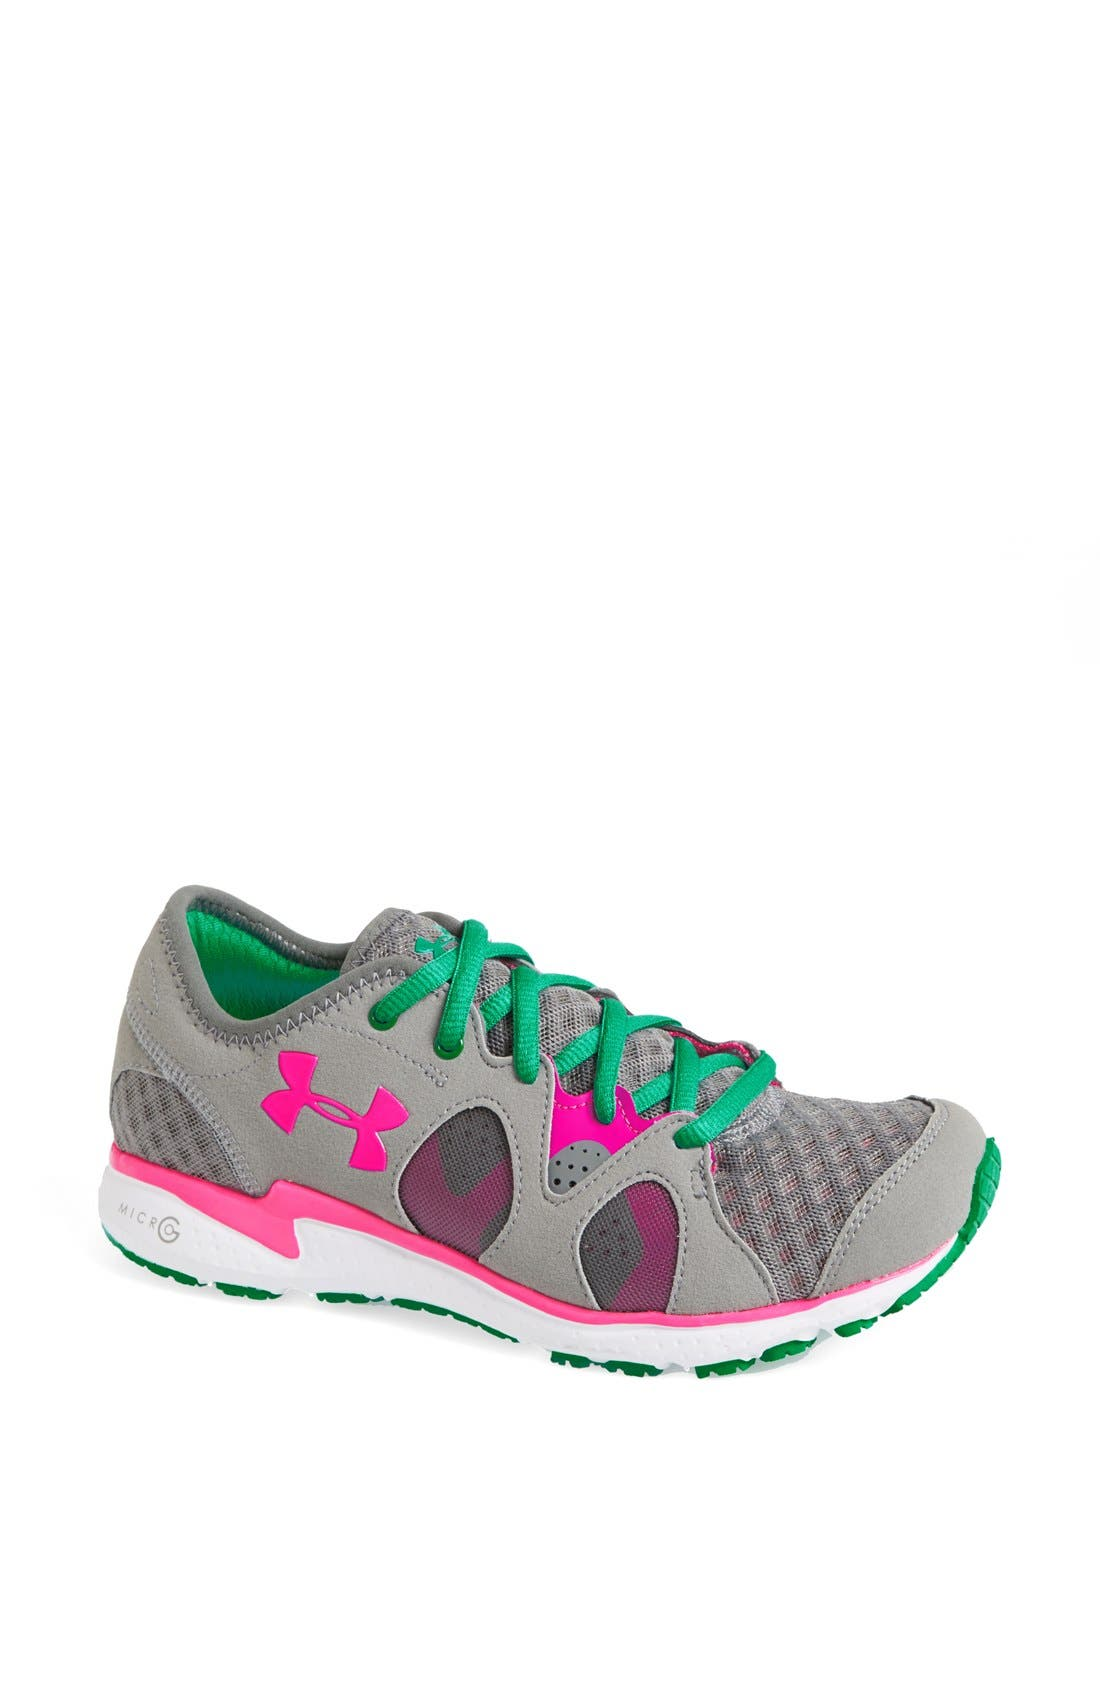 Alternate Image 1 Selected - Under Armour 'Micro G® Neo Mantis' Running Shoe (Women)